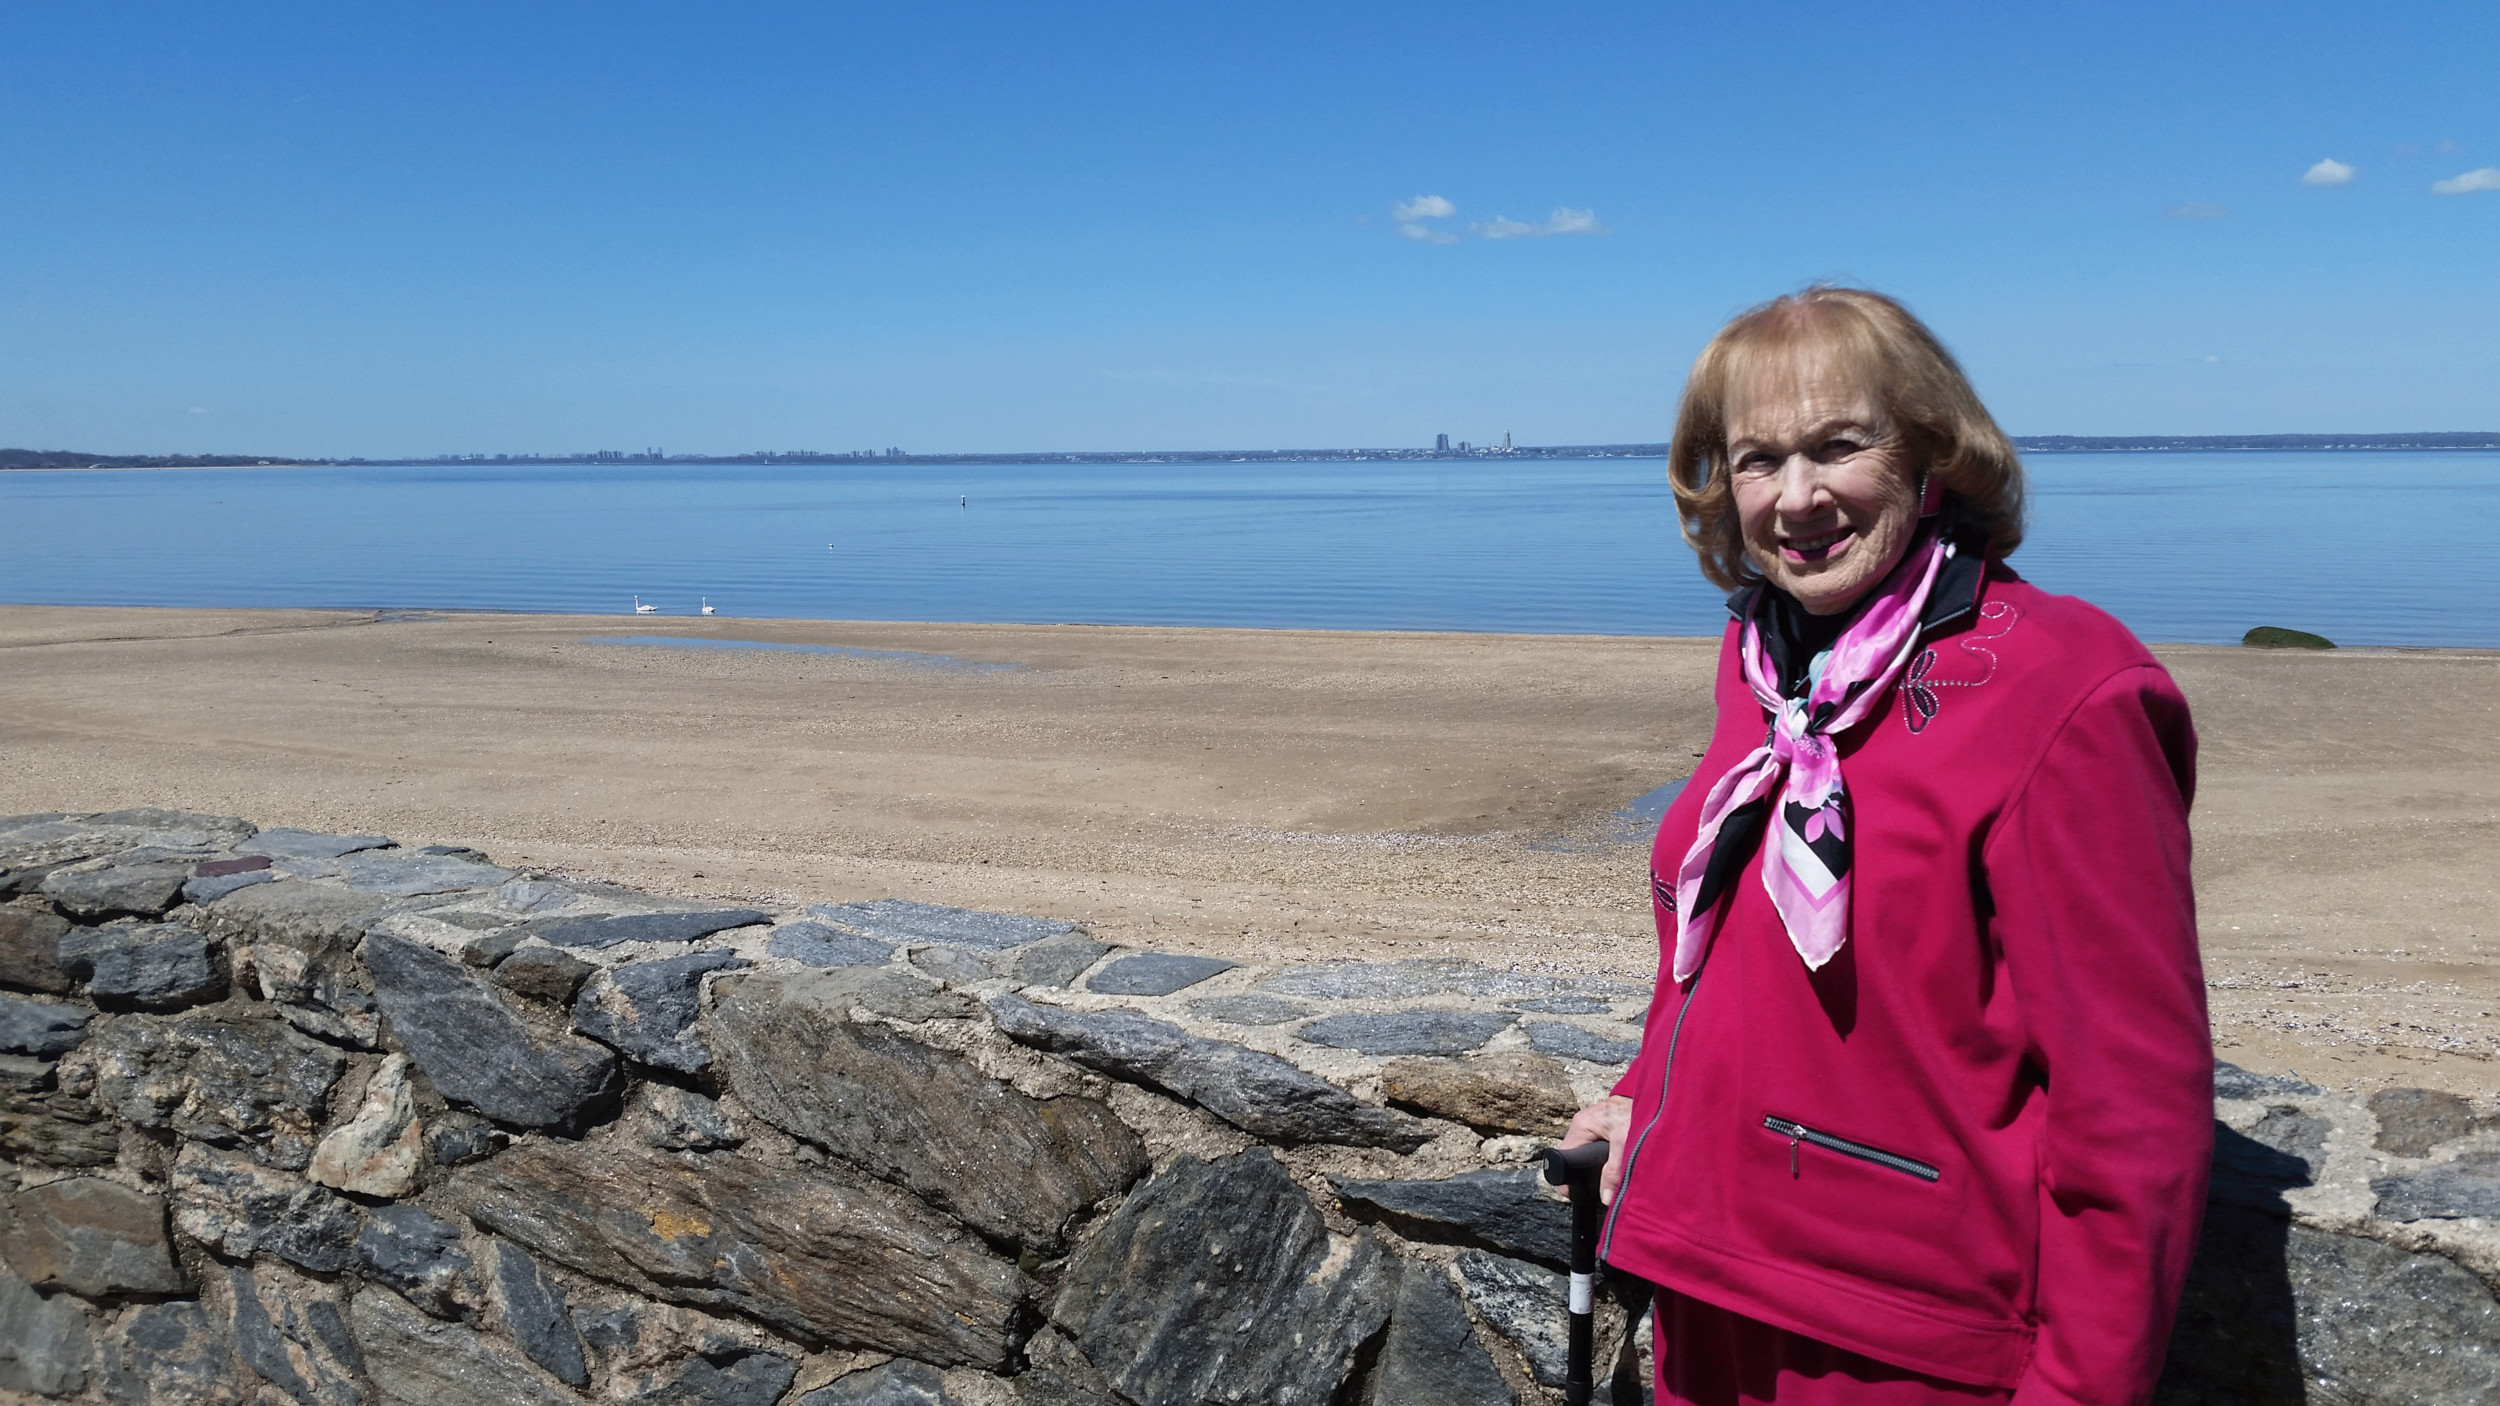 Dr. Helen Greene, a resident, spent many summers at the beach with her family, but hasn't set foot there since it closed.